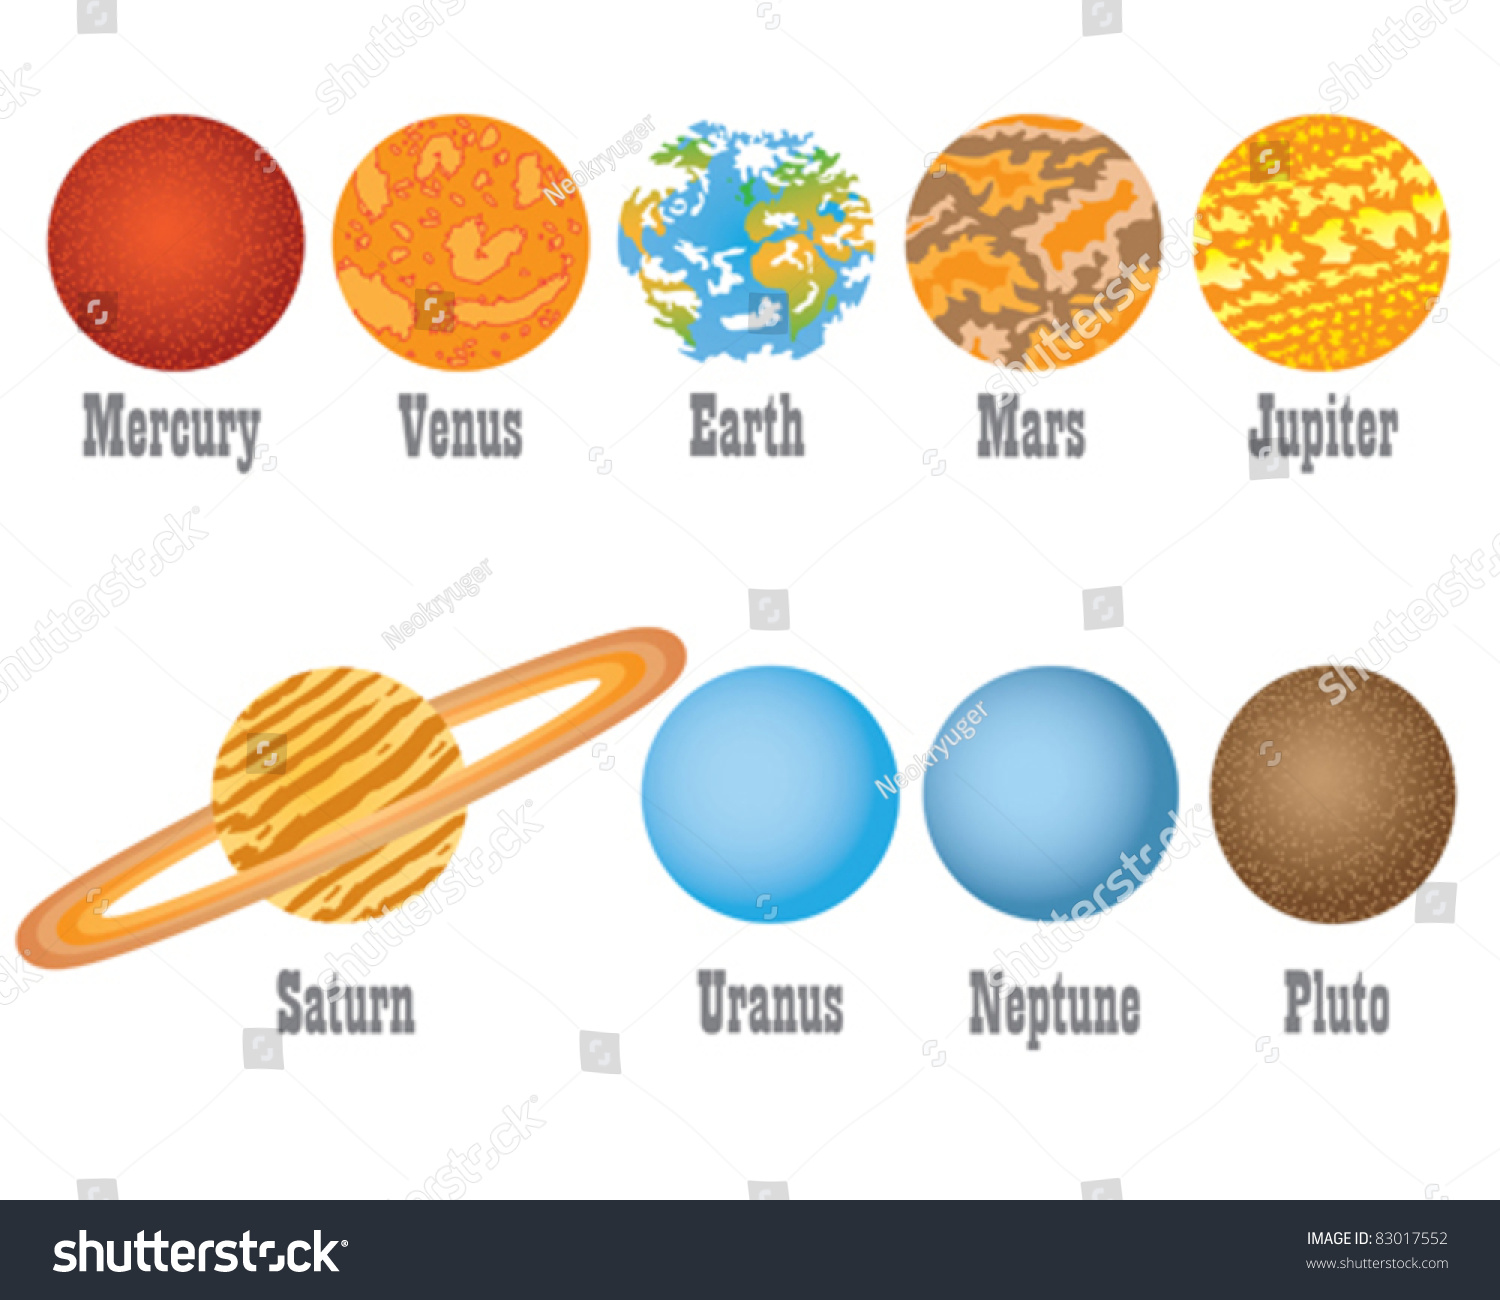 Background batik pattern stock photography image 803022 - 9 Planets Clipart